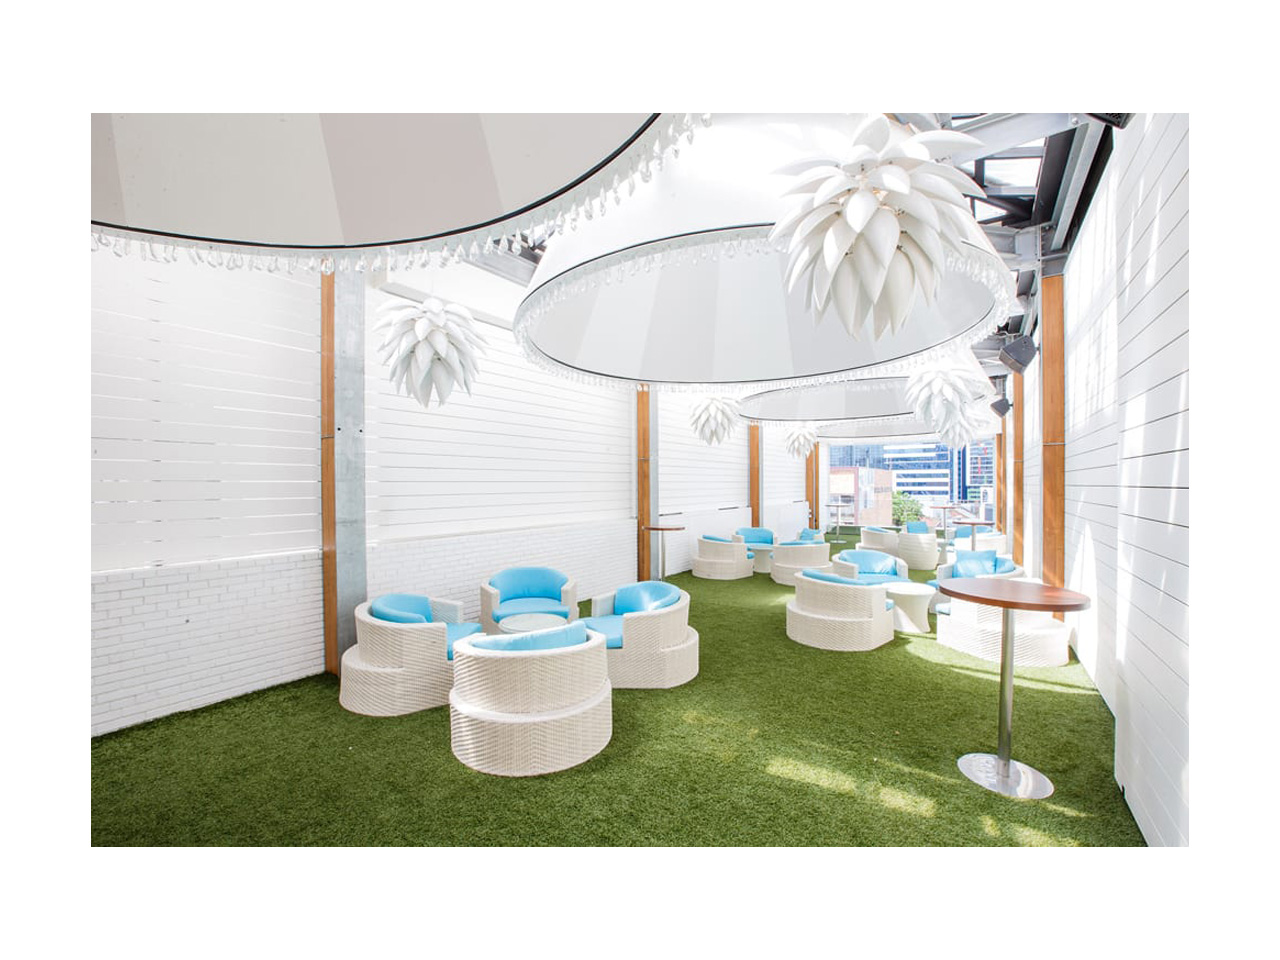 Semi-outdoor function room with white decor and blue and white individual seating with round tables and large overhead lighting